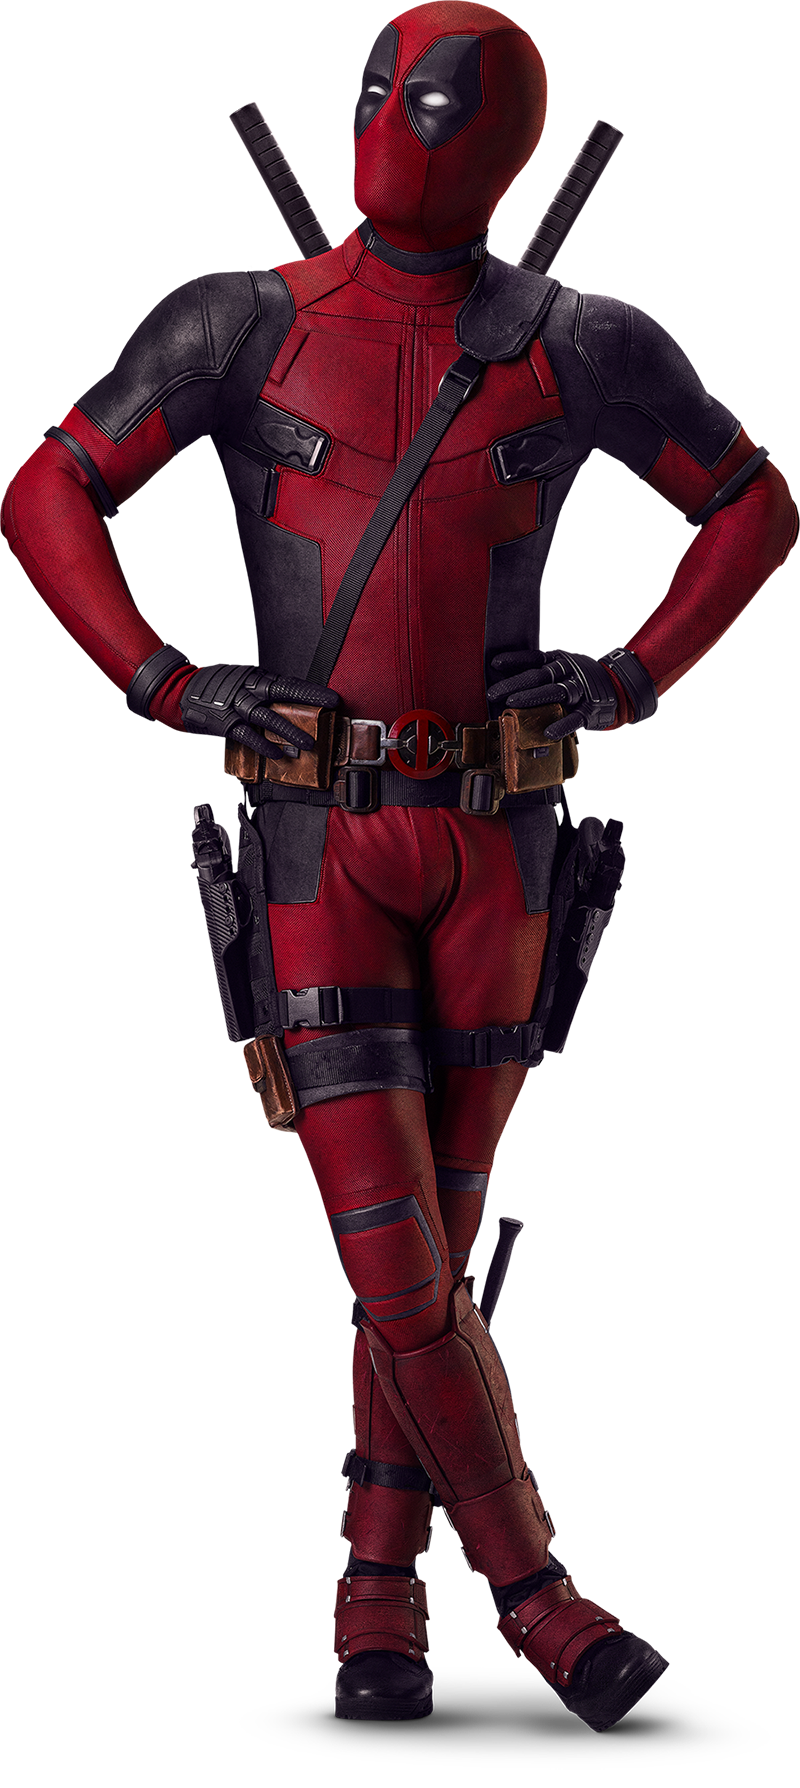 Deadpool clipart deadpool 2. The imax invitational by